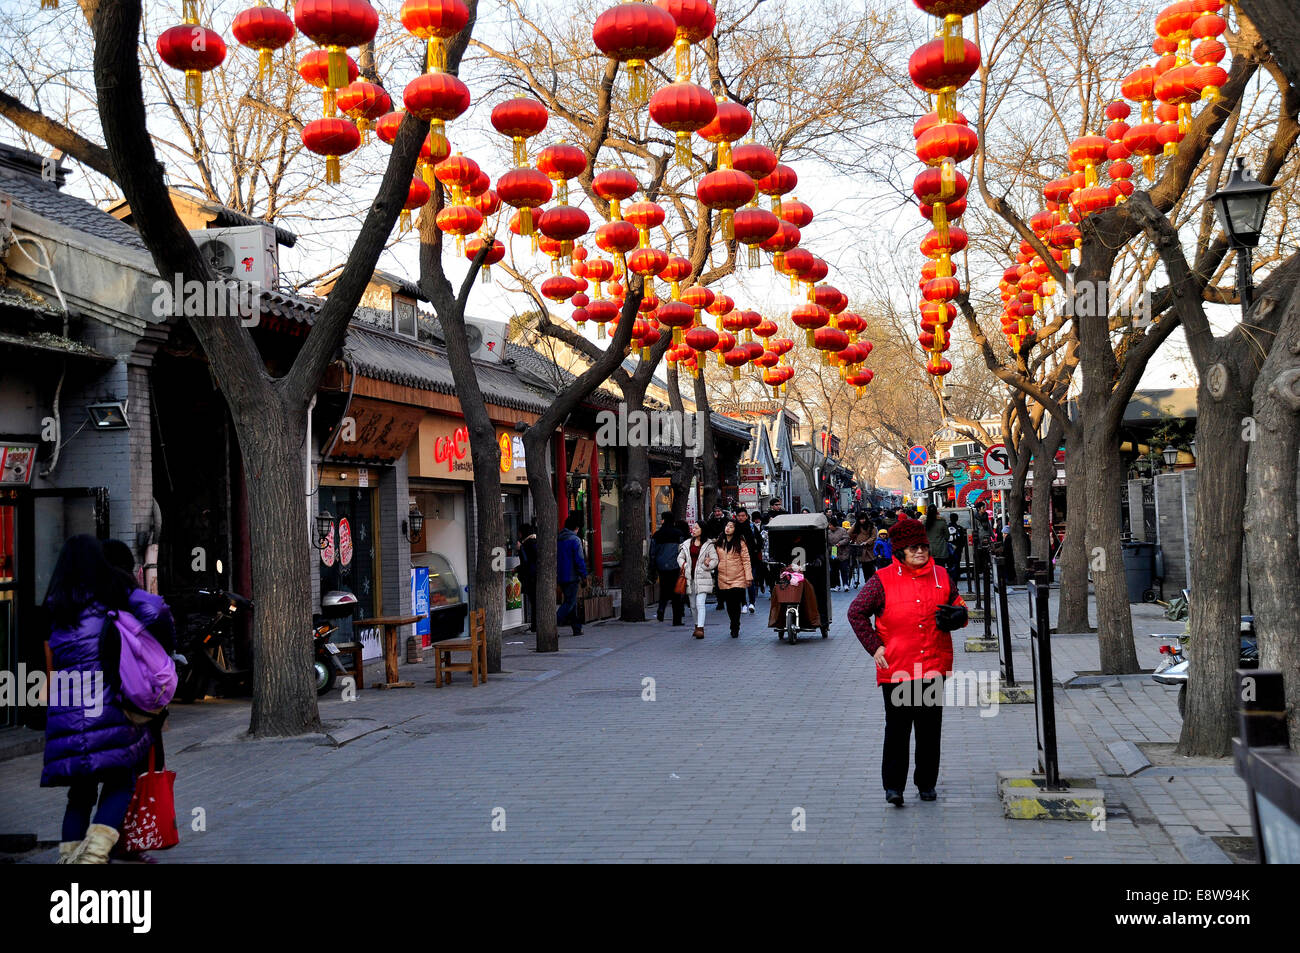 Street scene in a hutong community in the city centre, Beijing, China - Stock Image